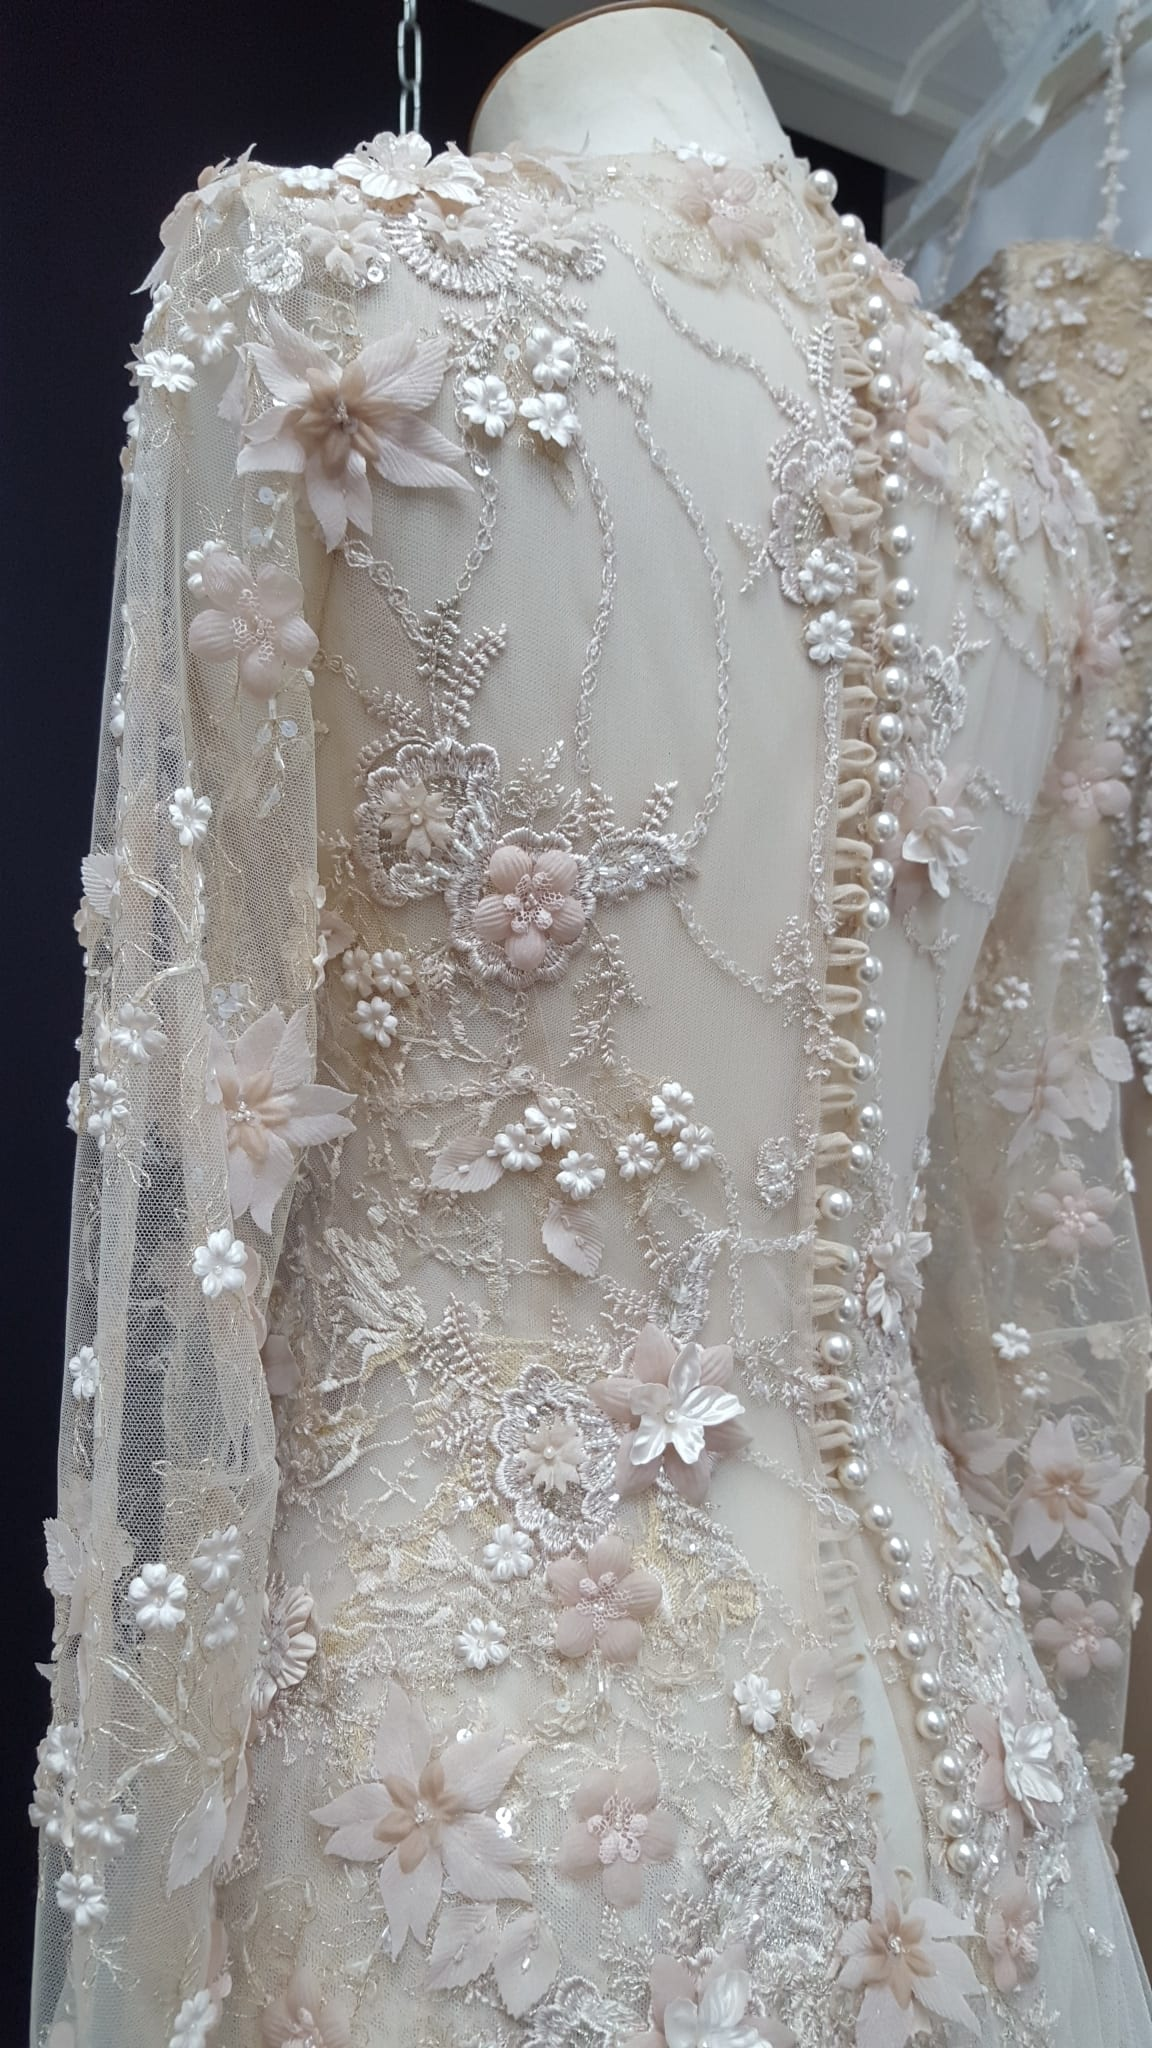 Vinka Design Dress of My Dreams - Hand-Made Bridal Gowns and Wedding Dresses in Auckland, New Zealand